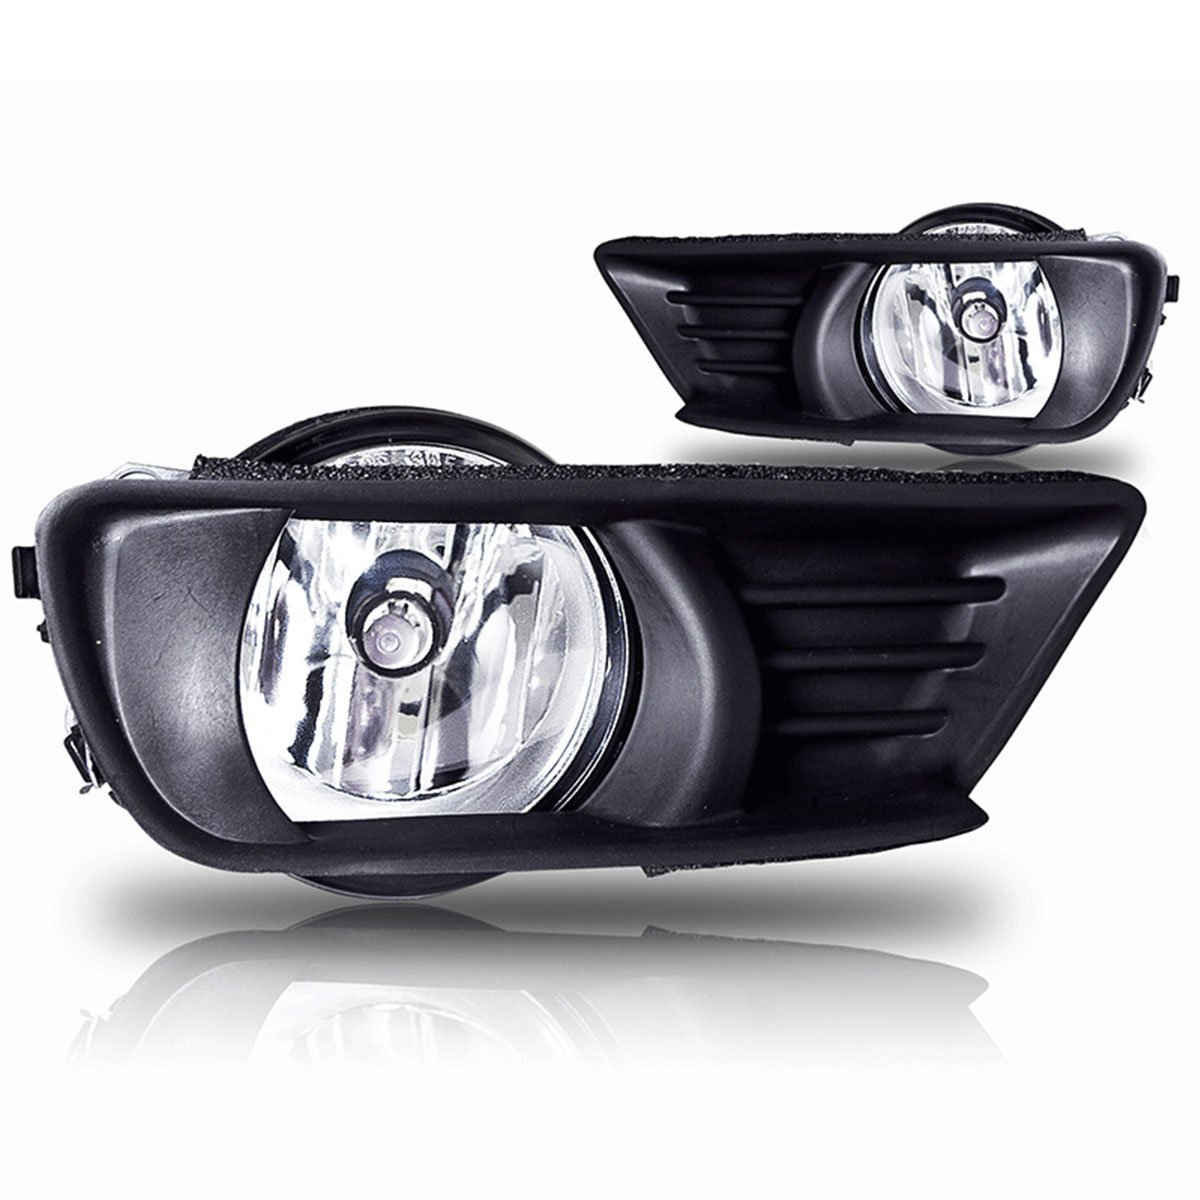 hight resolution of 07 09 toyota camry oem fog light clear wiring kit included dot sae approved made by oem approved manufacturer that meets or exceeds oe